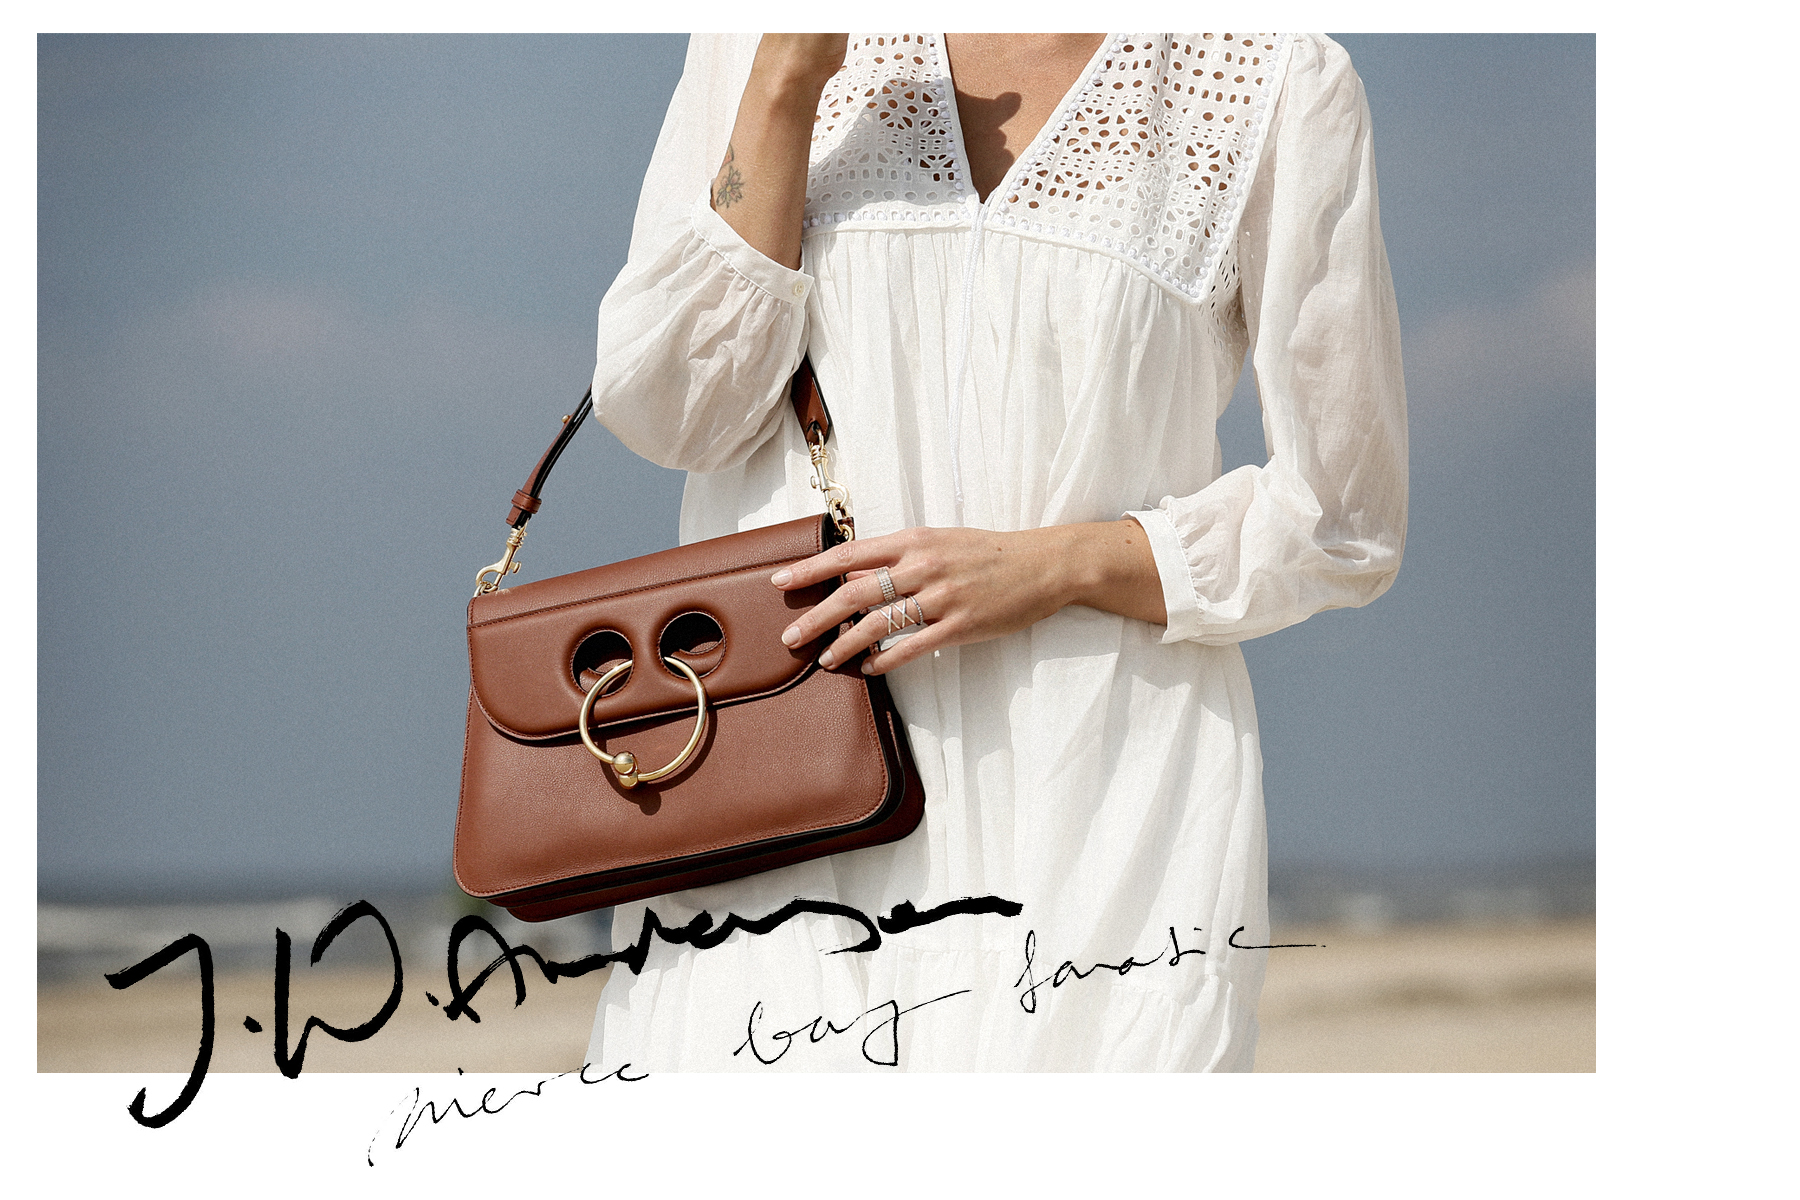 breuninger beach white dress closed j.w.anderson pierce bag straw hat summertime sunshine photography editorial vogue fashionblogger düsseldorf cats&dogs blog ricarda schernus modeblogger 2